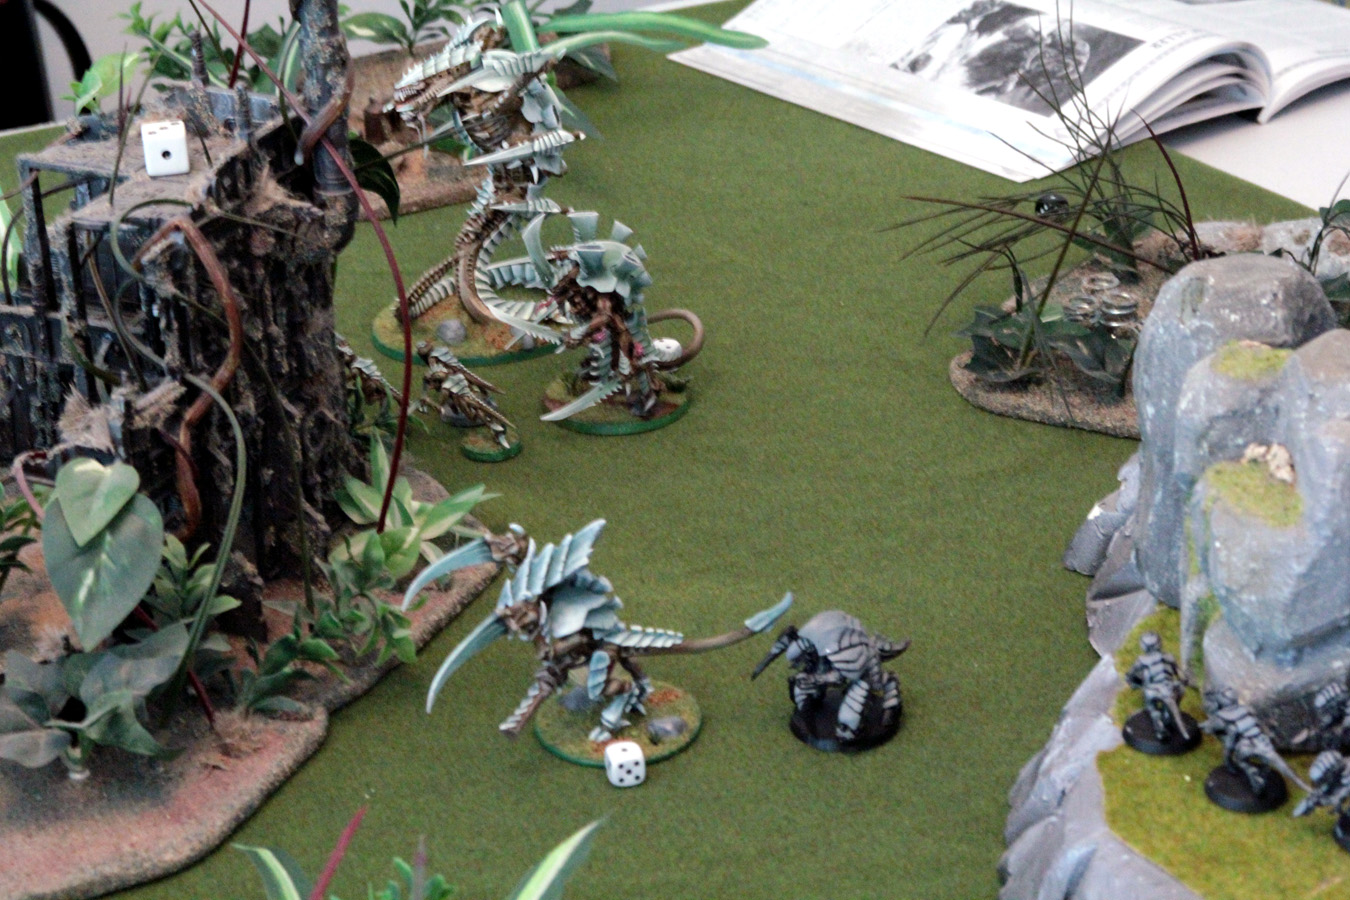 Logan dead. Regroup and head towards objectives.